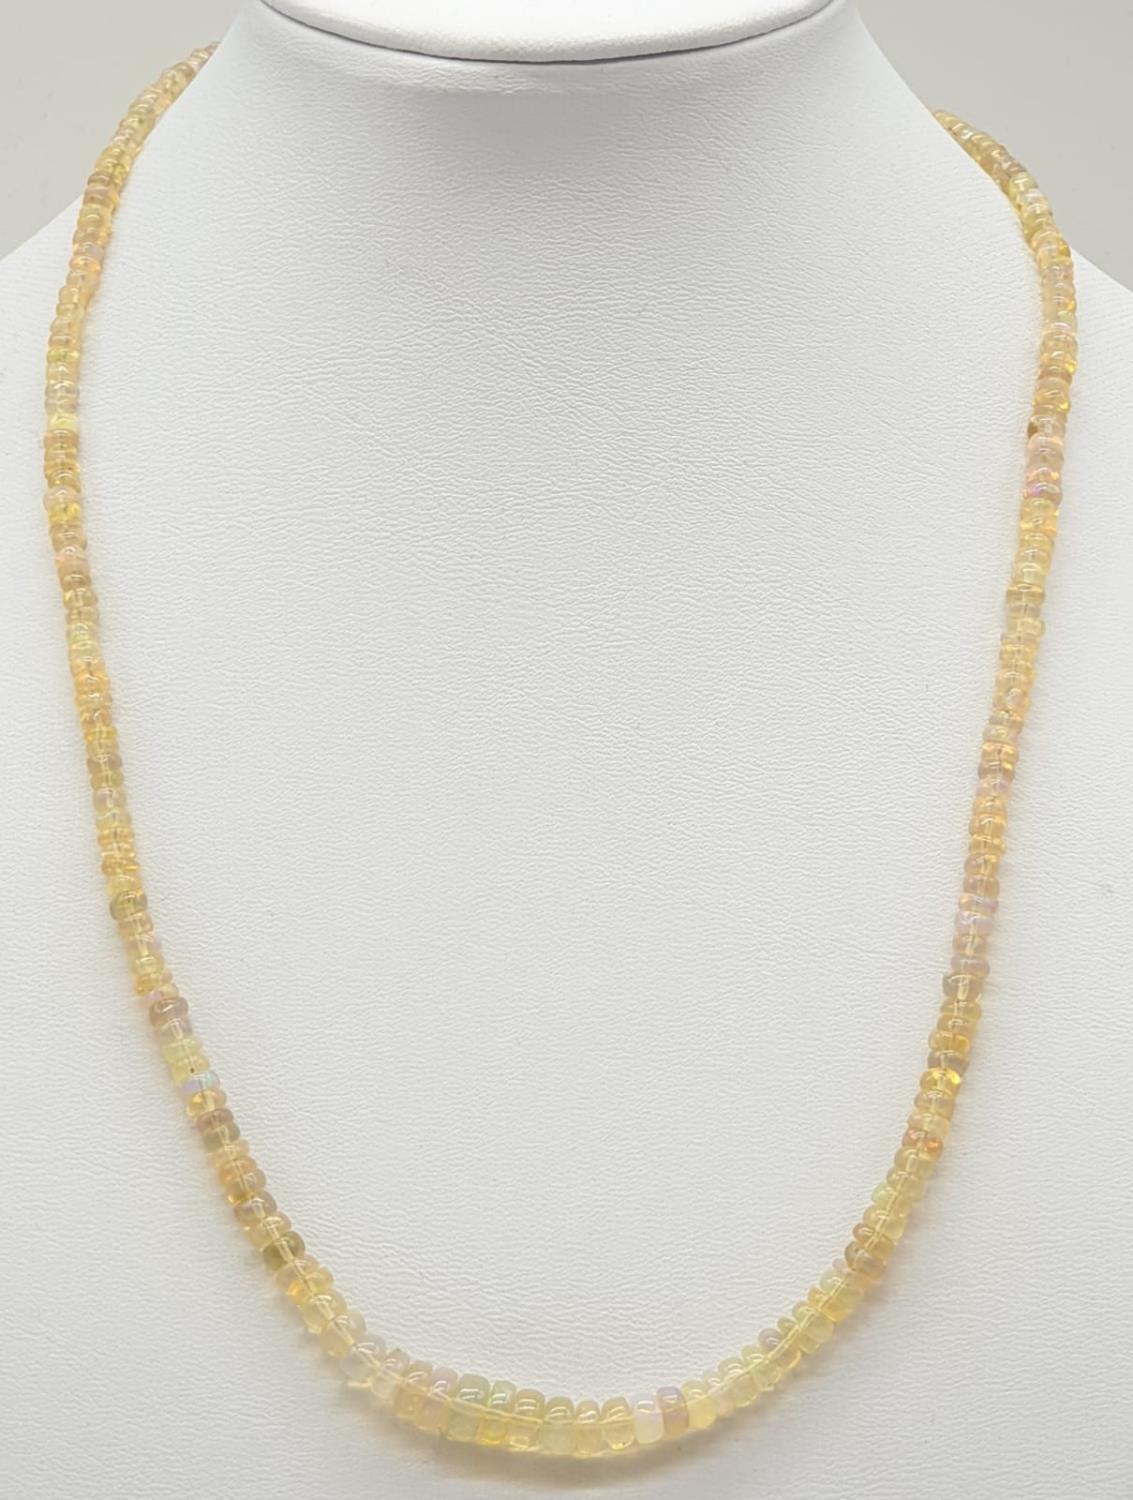 A fire opal gemstone single row necklace. Length 21cm, weight 9.16g. - Image 2 of 5